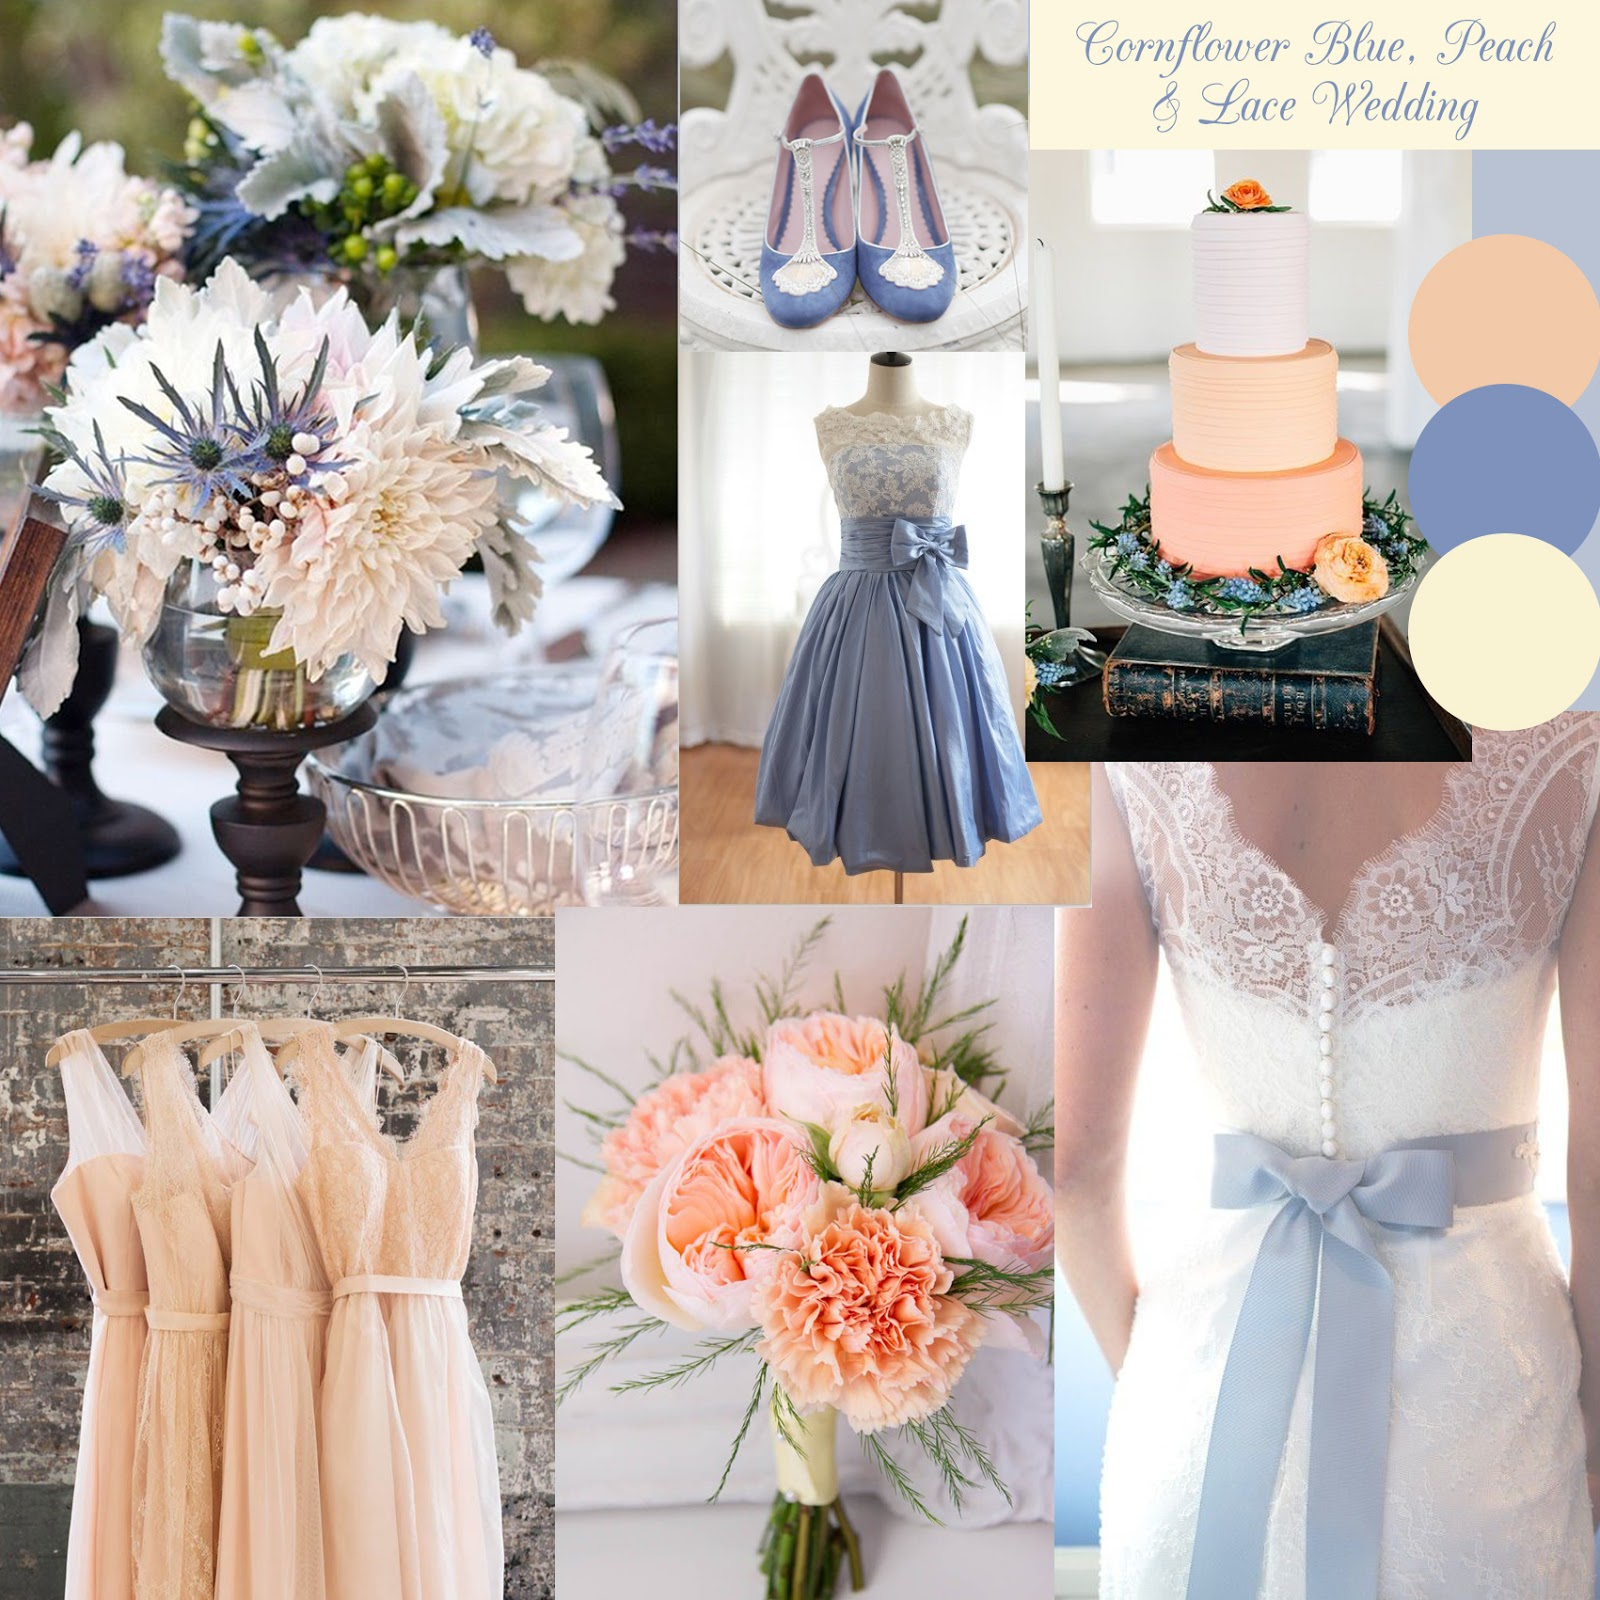 If It Eals To You For Your Wedding Incorporating Lots Of The Lace Details Reflect Stationery And A Gorgeous Pair Cornflower Blue Shoes